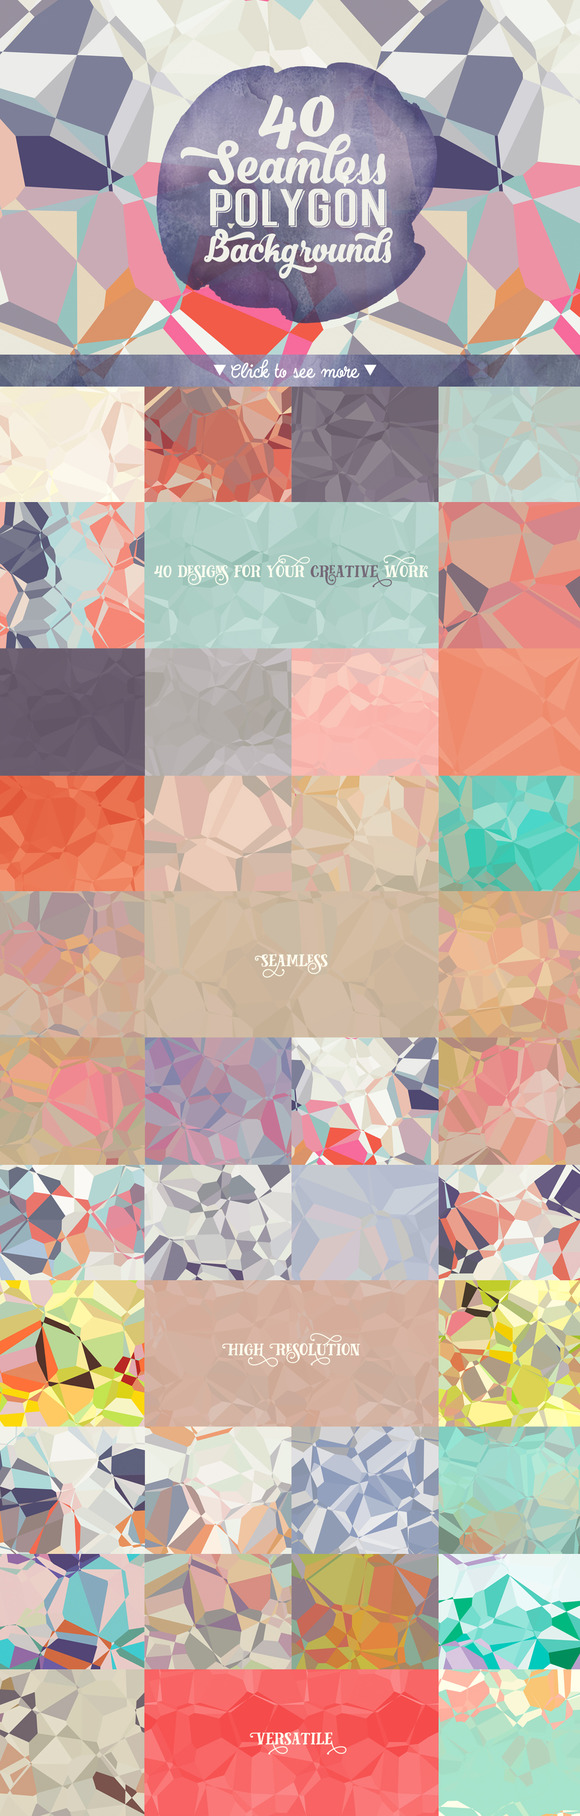 40 Seamless Polygon Backgrounds